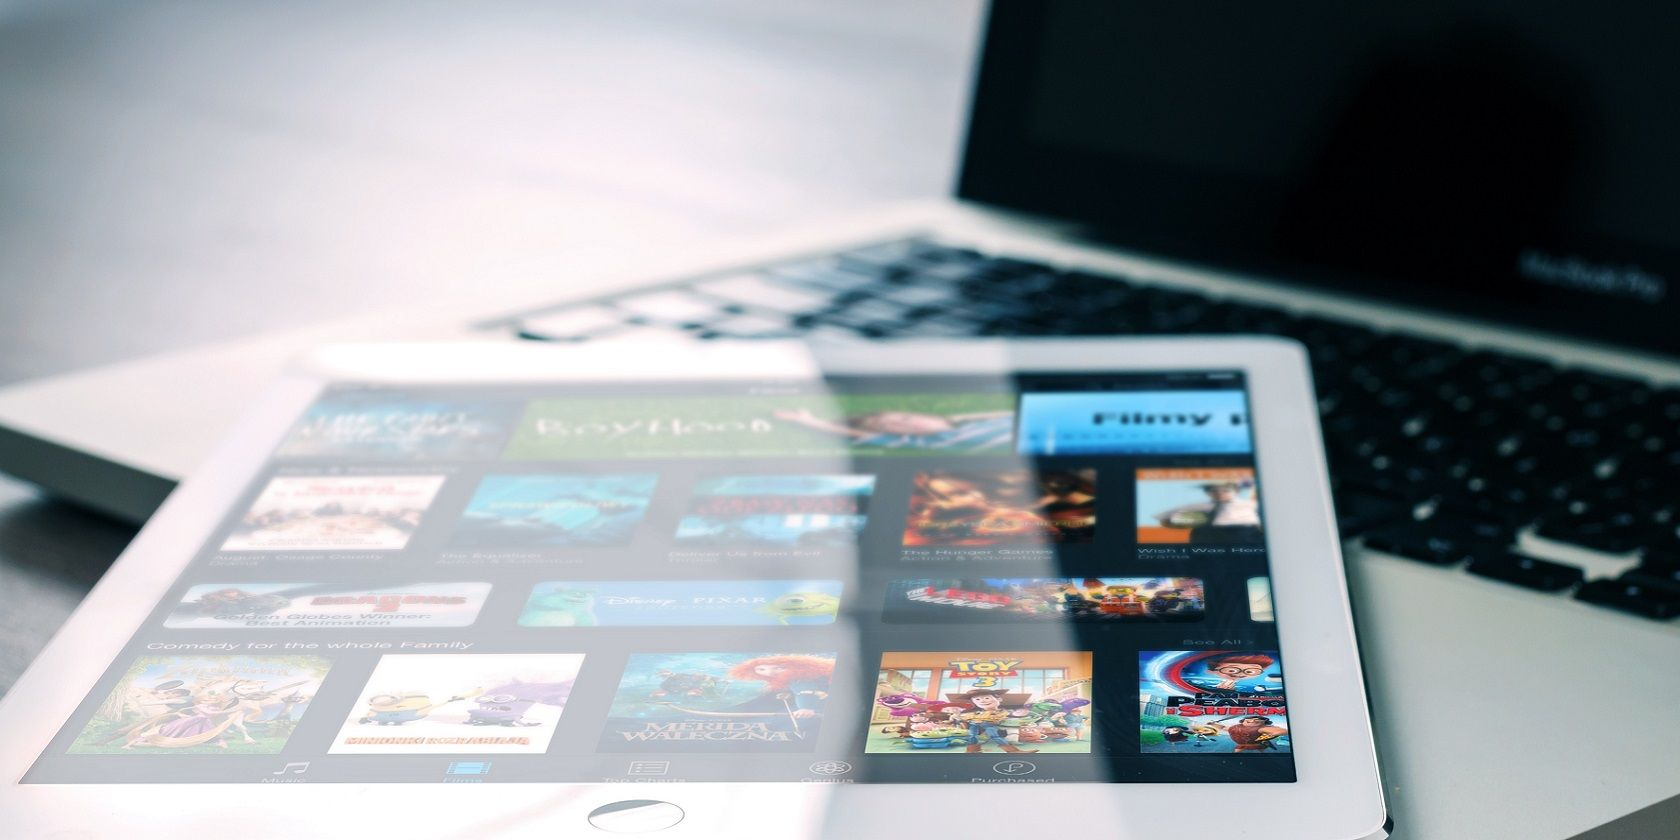 9 Free Movie Streaming Sites With No Sign Up Requirements